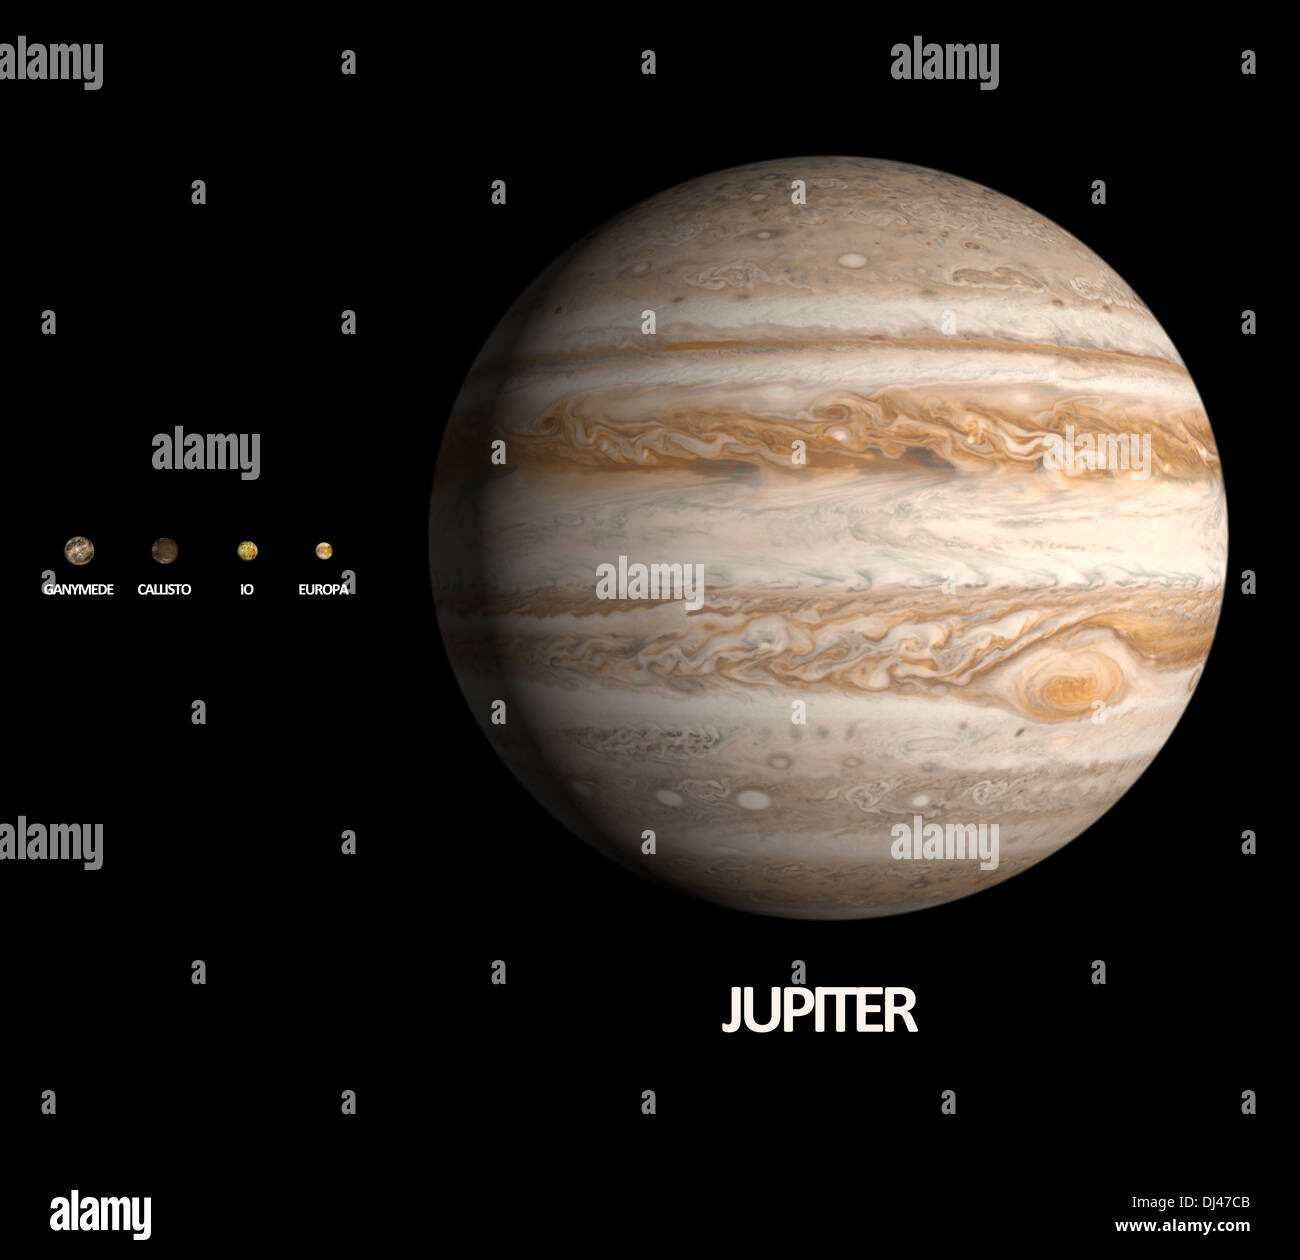 A rendered size comparison of the planet Jupiter and it's moons Ganymede, Callisto, Europa and Io with English captions. - Stock Image